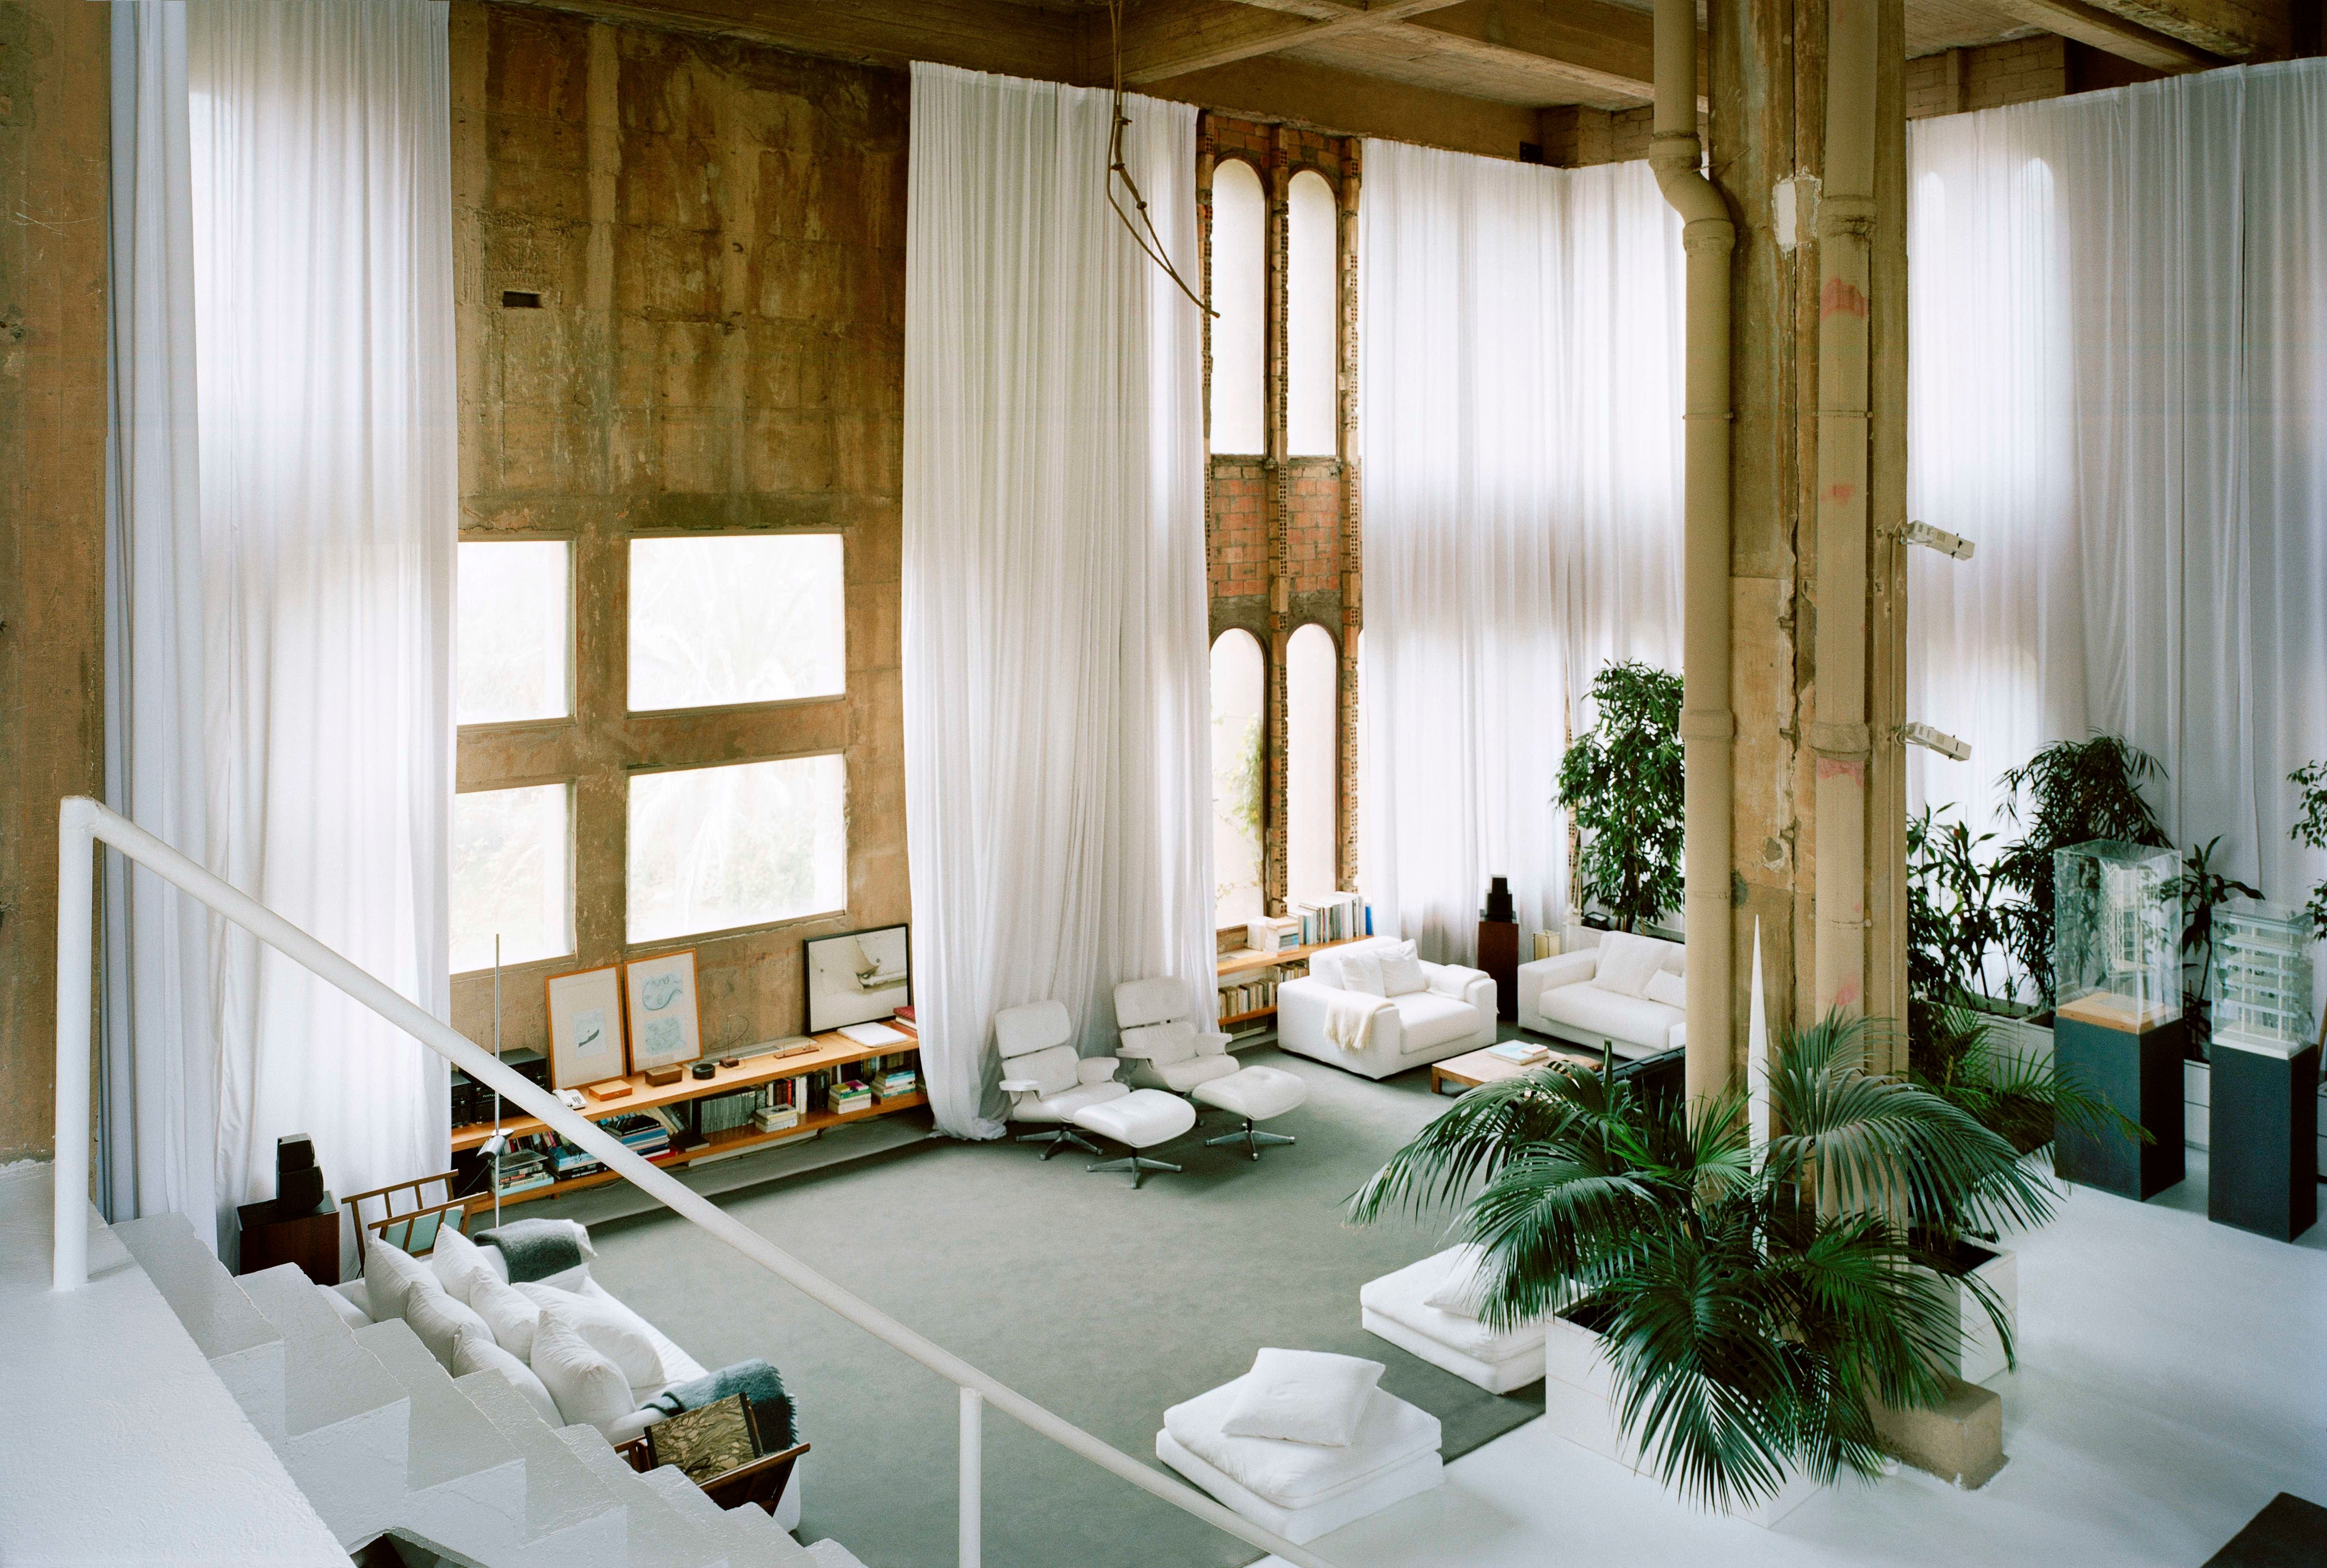 """<a href=""""http://www.ricardobofill.com/la-fabrica/read/"""" target=""""_blank"""">A perfect cube</a>, the main living room is meant to"""